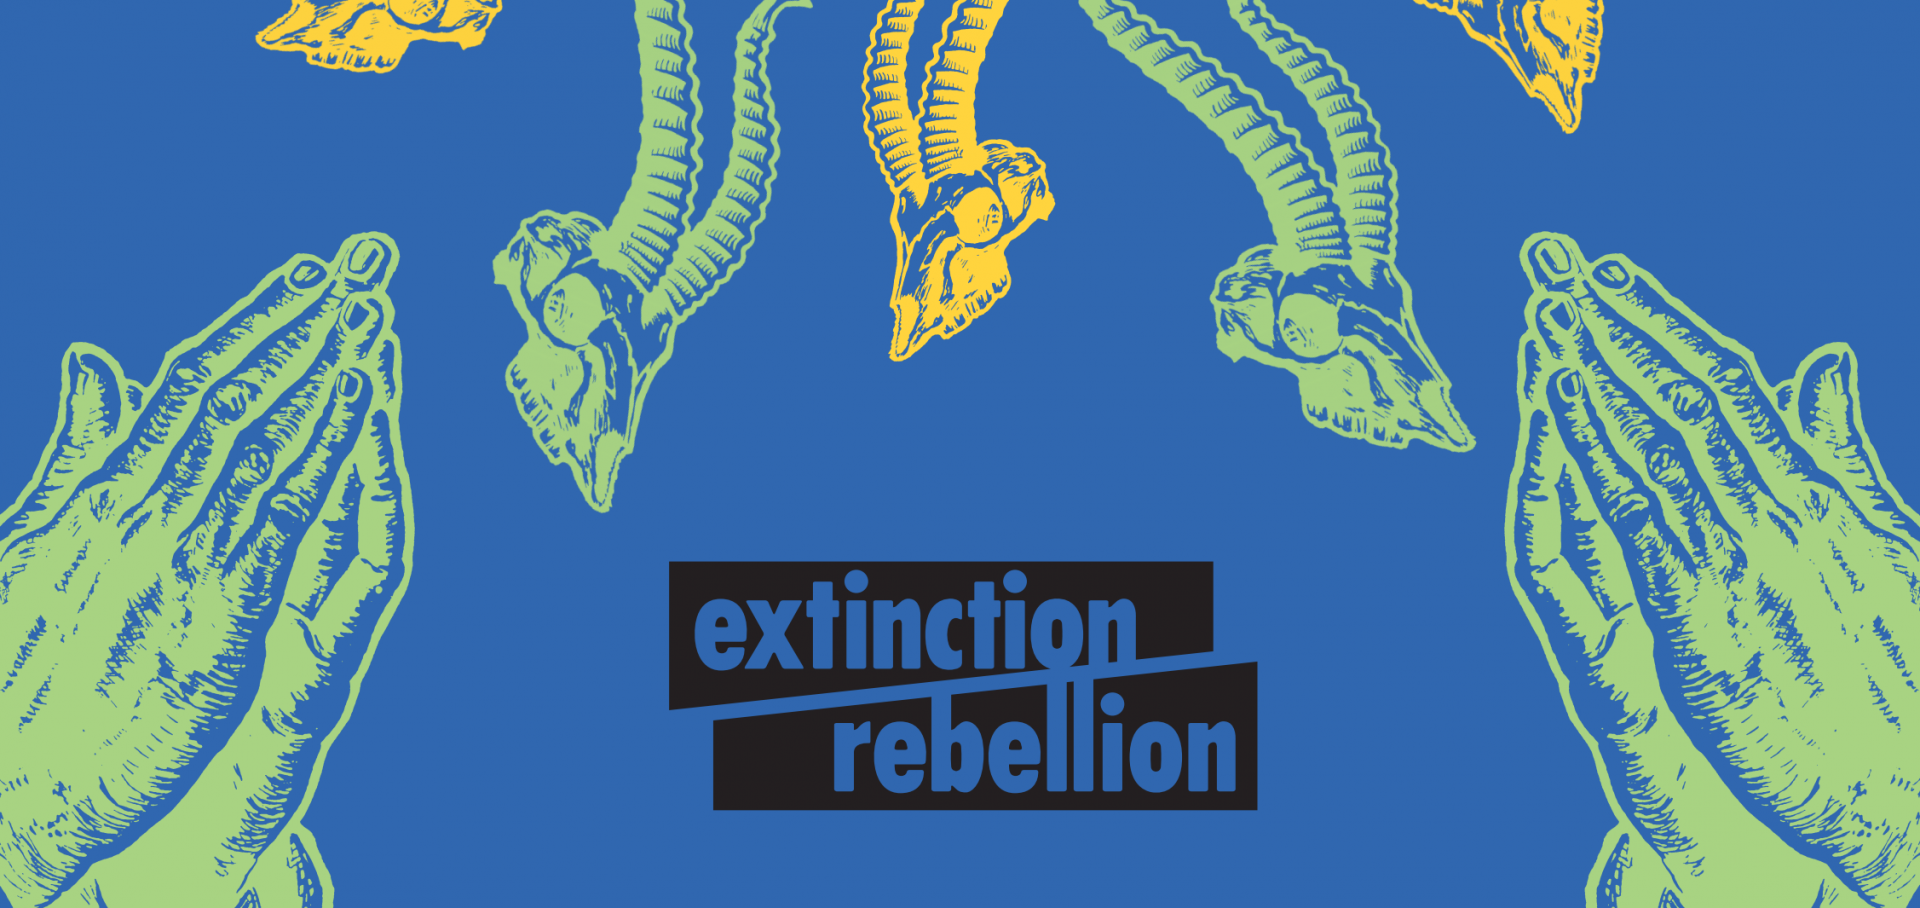 The Morning After The Rebellion: An Open Letter To The People of #ExtinctionRebellion